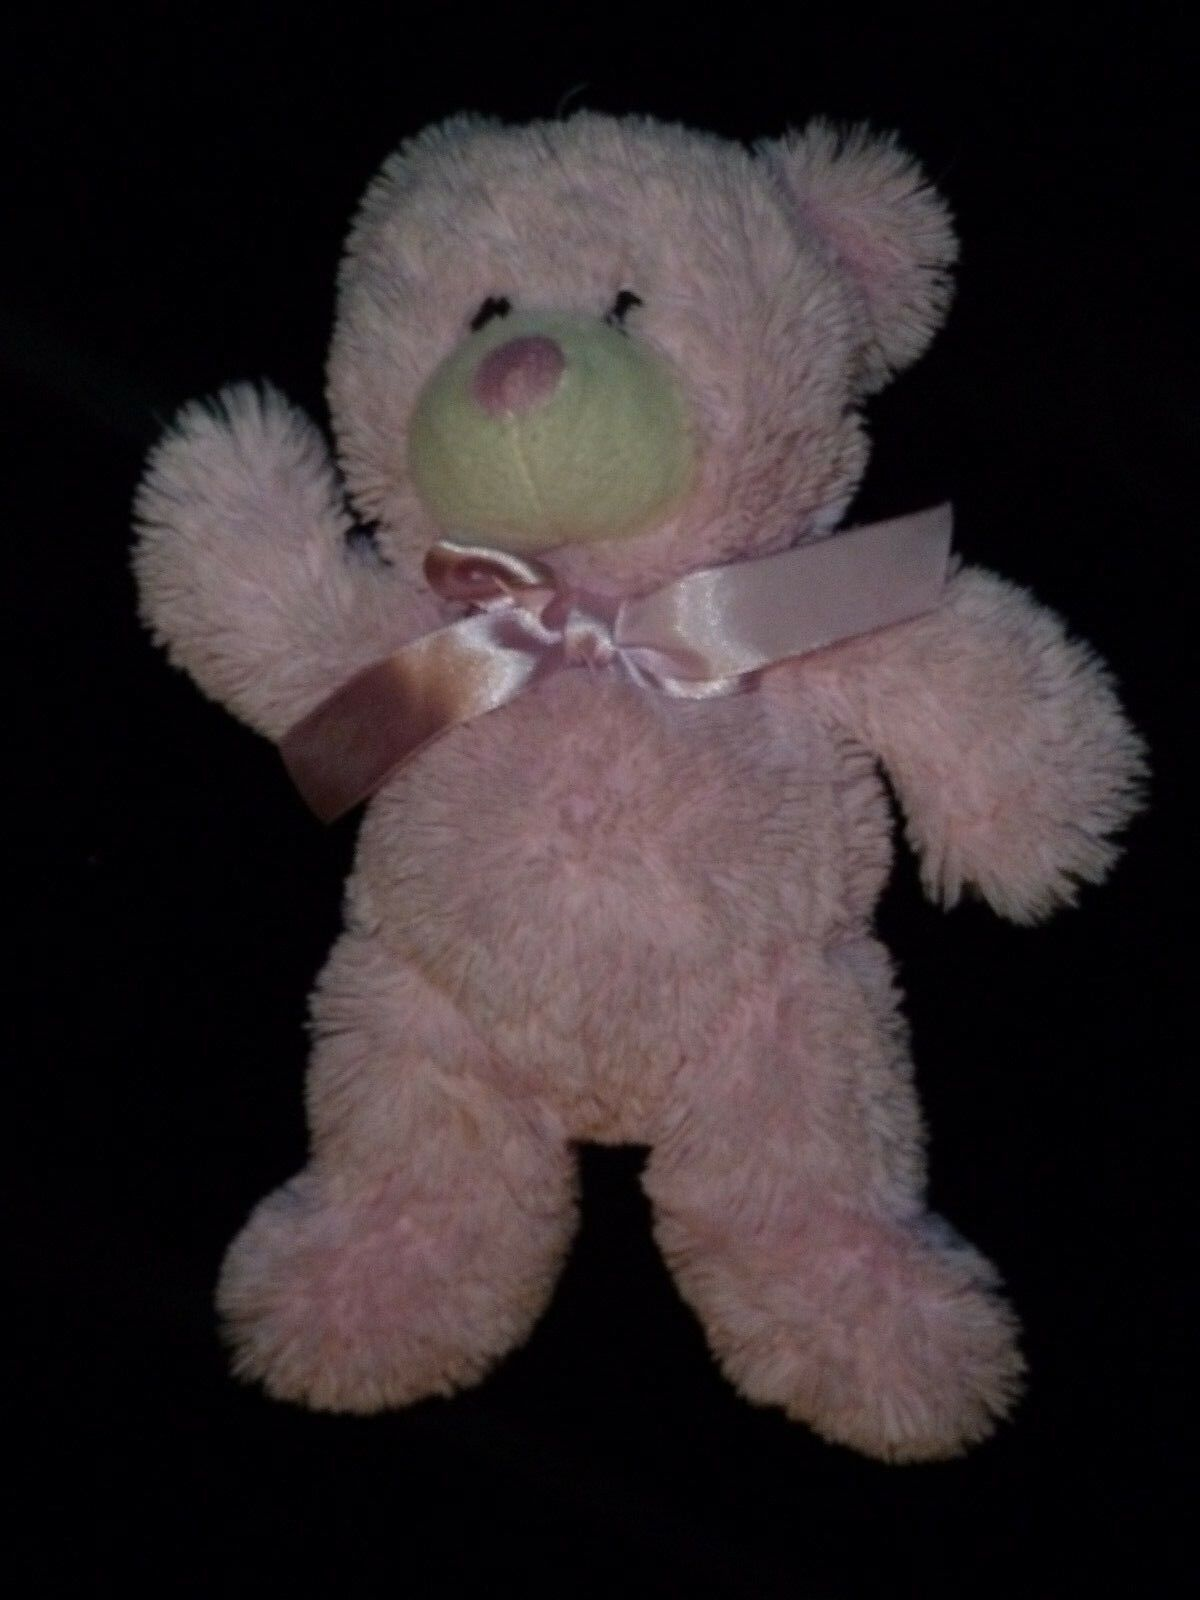 ANIMAL ADVENTURE STUFFED PLUSH PINK TEDDY BEAR 2013 11